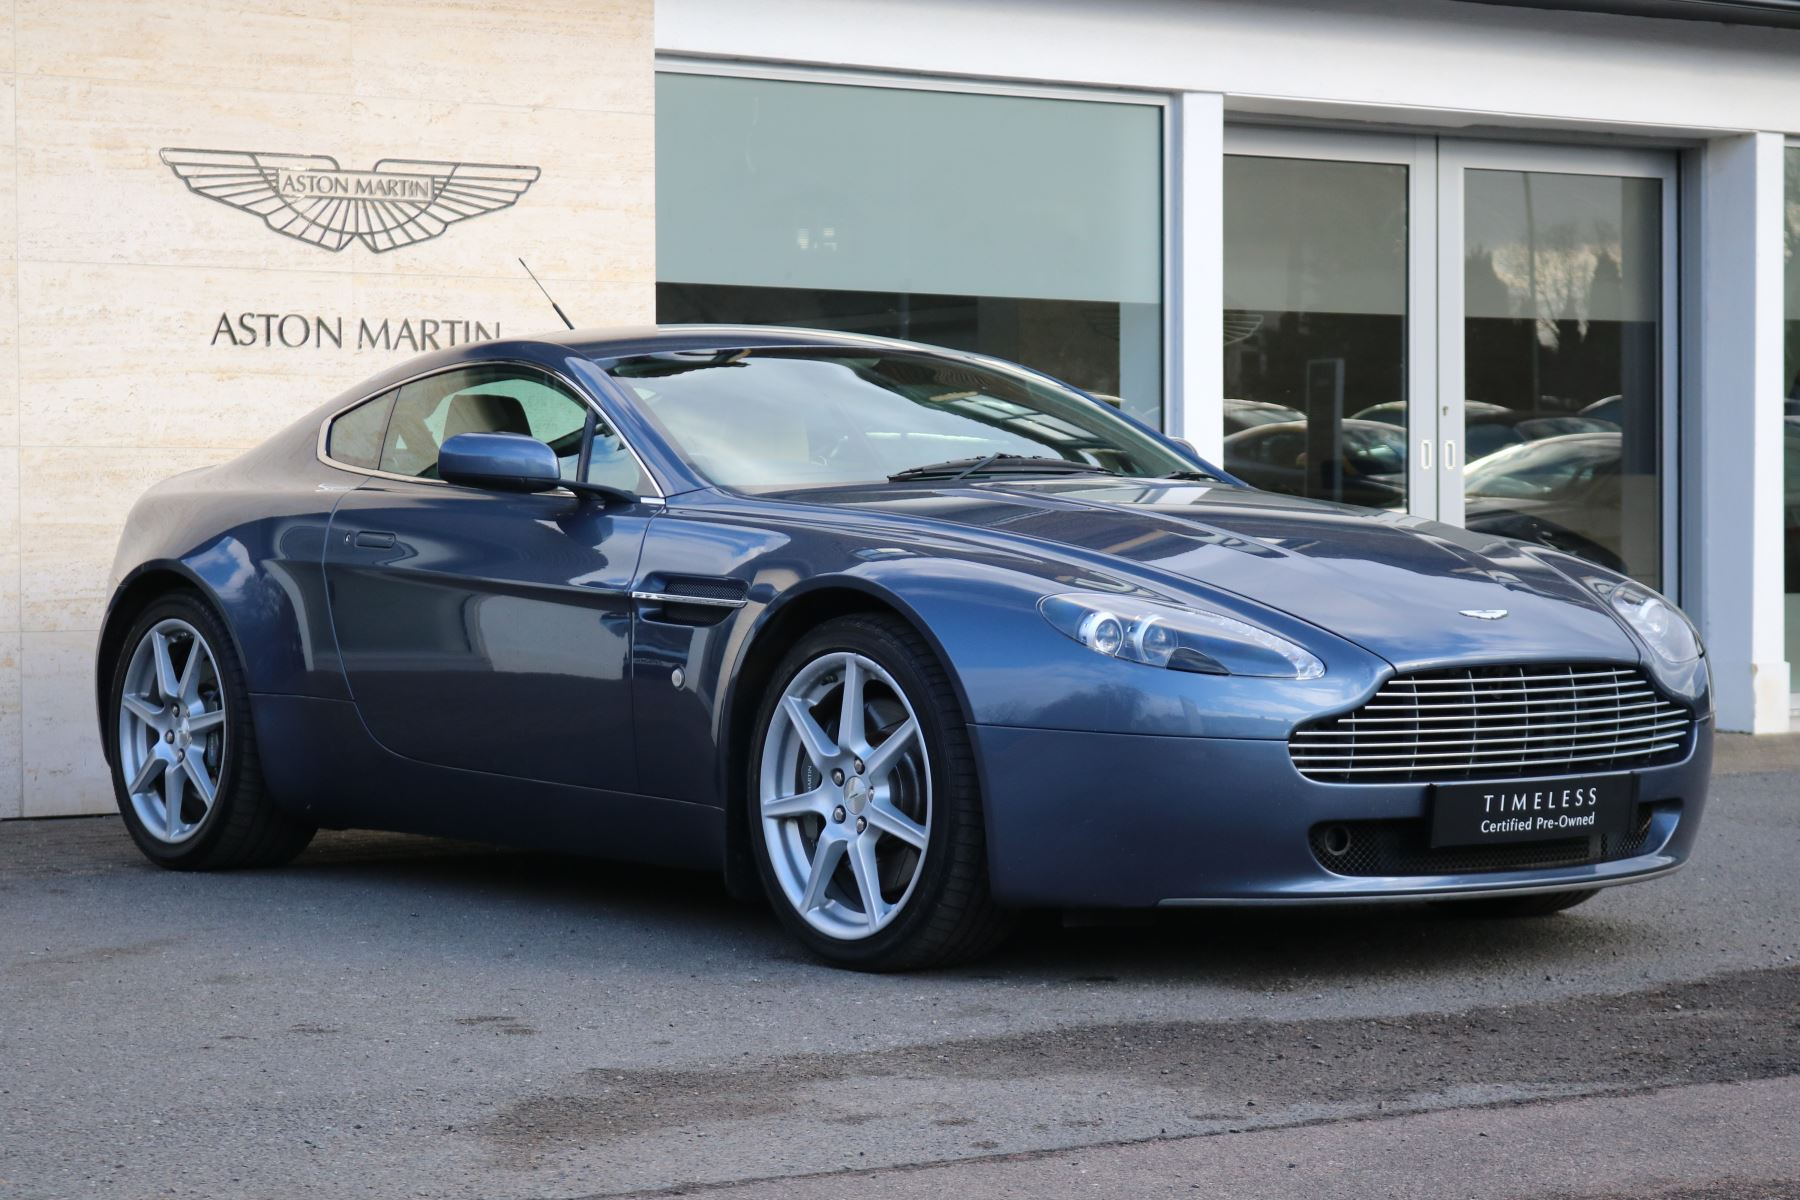 aston martin v8 vantage coupe 2dr 4.3 3 door coupe (2007) at aston